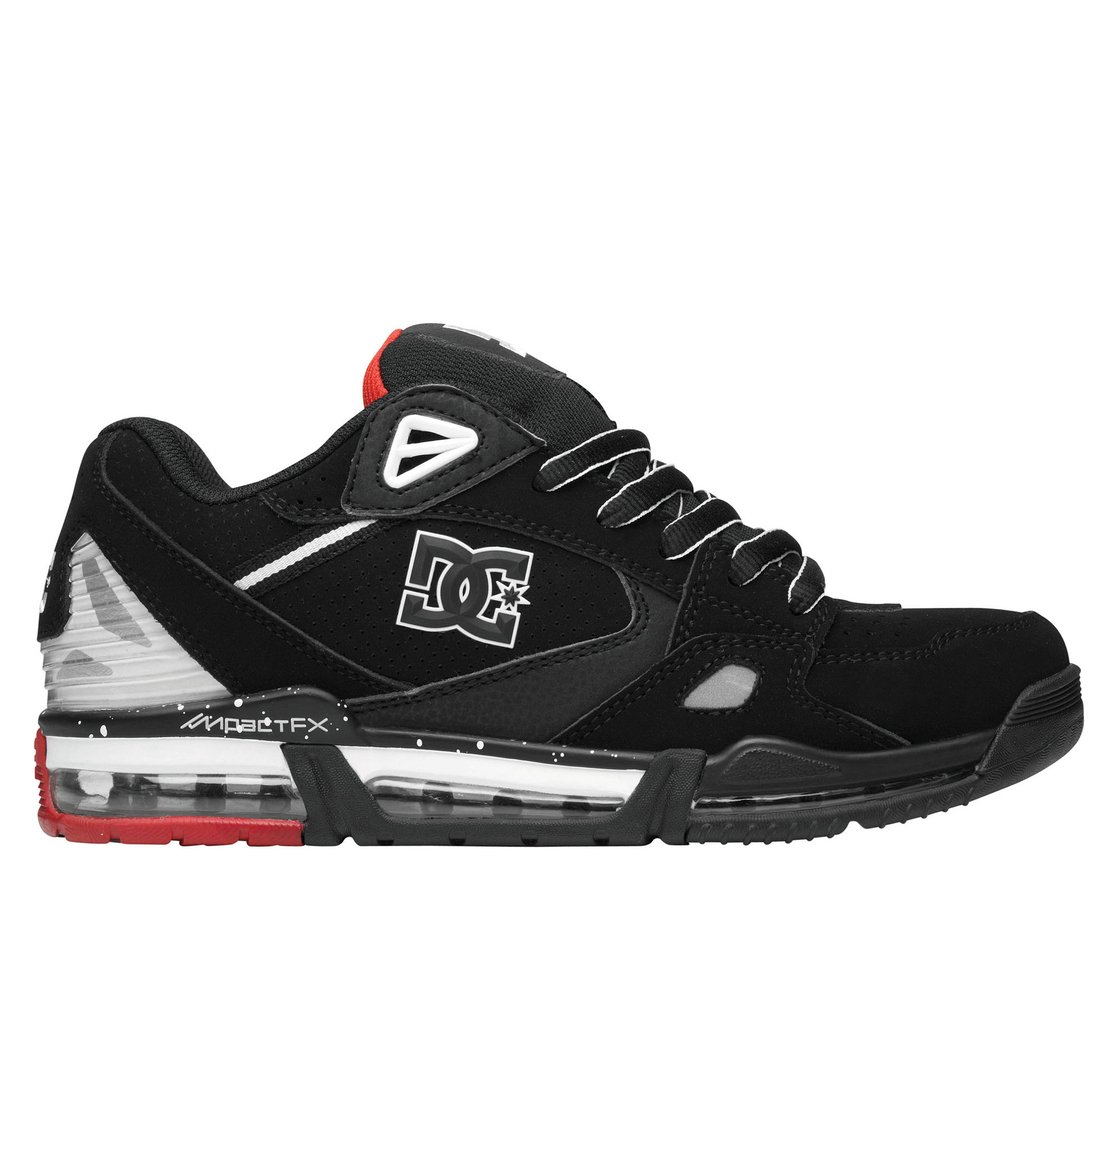 Impact I Dc Shoes